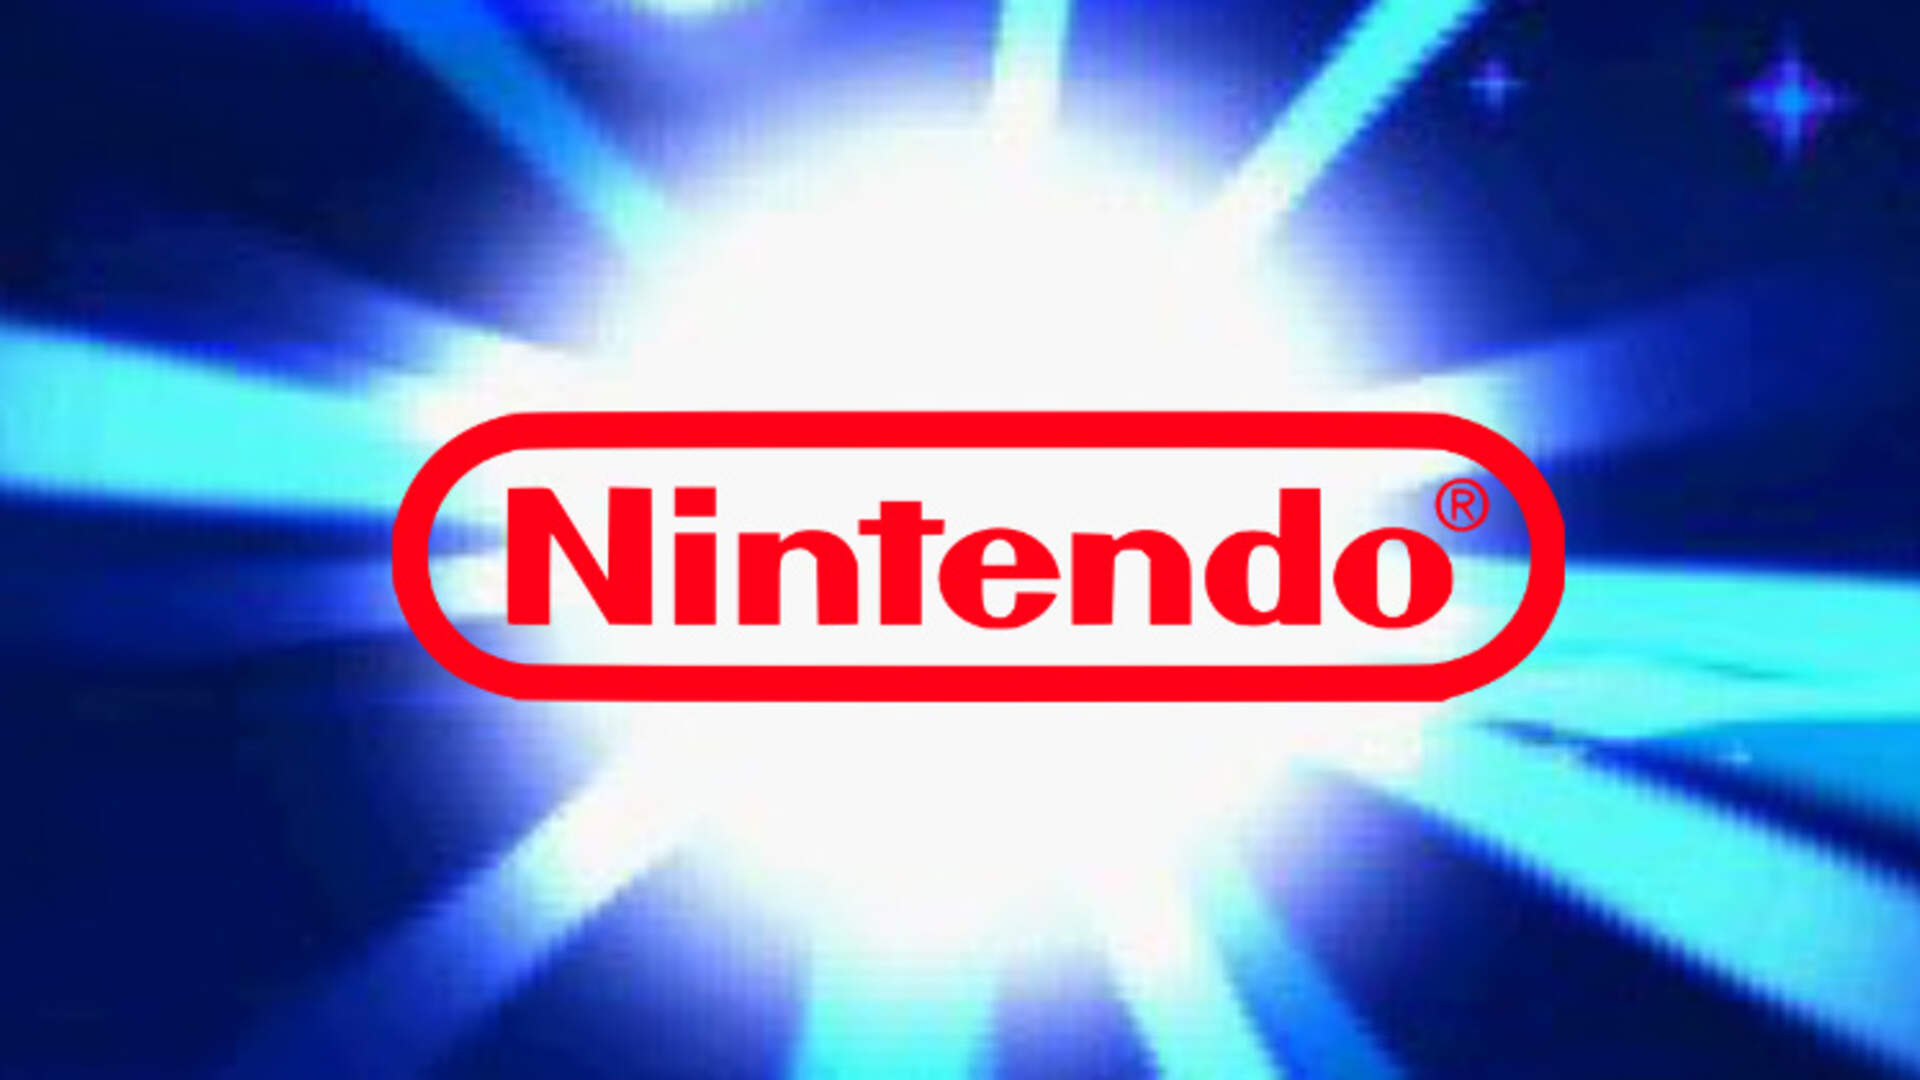 Nintendo's First Mobile Game Will Reportedly Launch Before the End of 2015